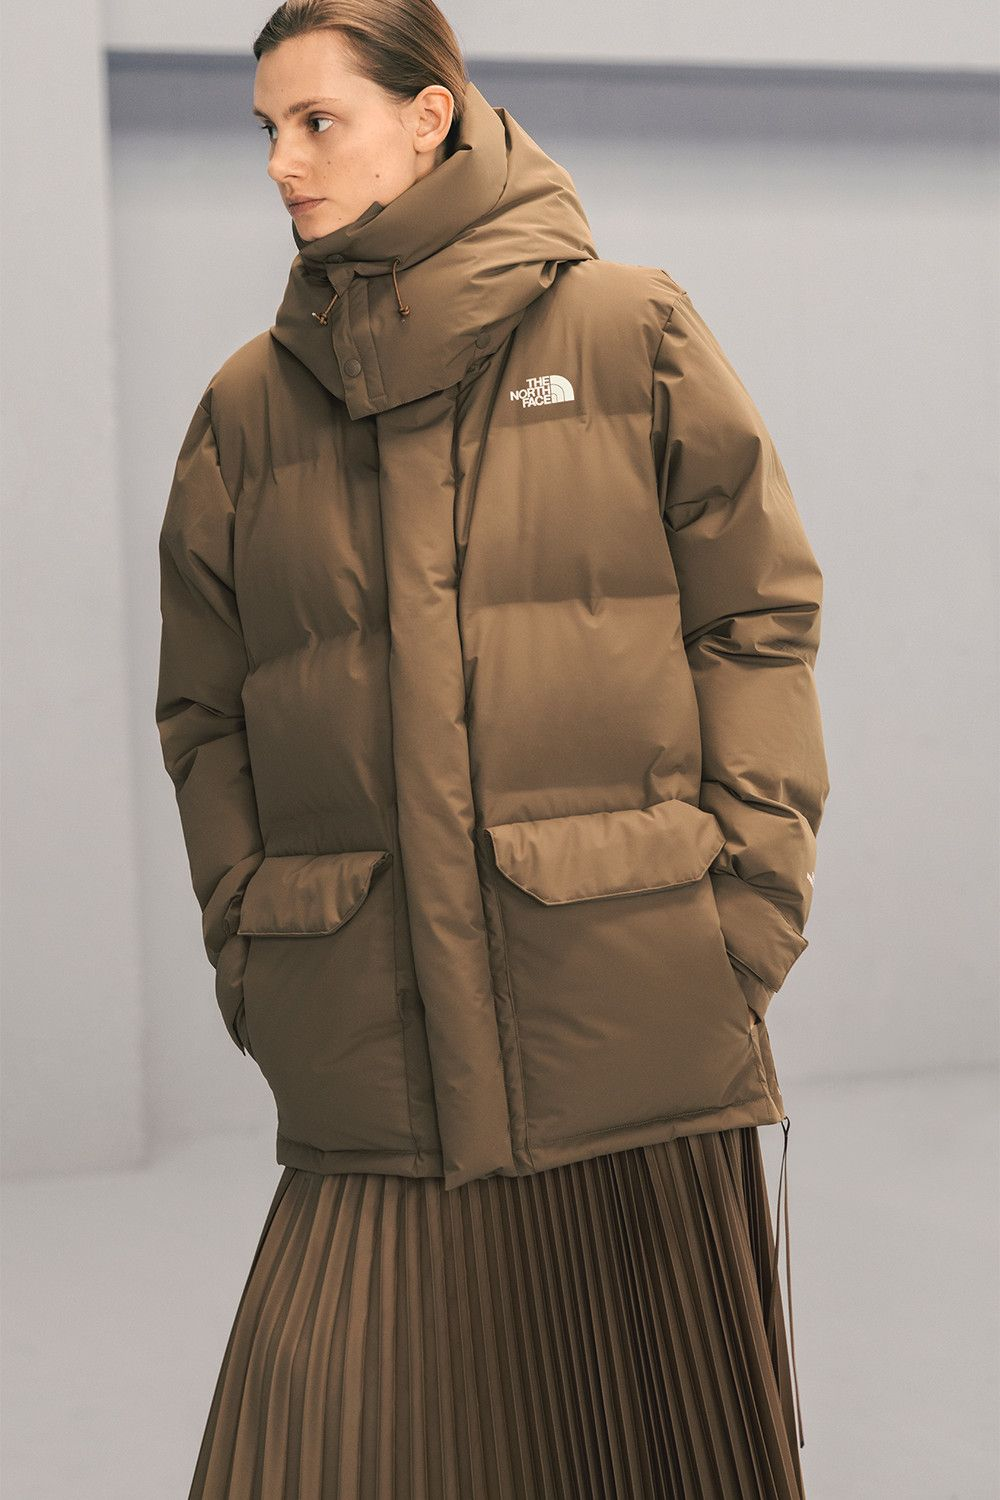 c6049cbc7 Elevated Outerwear Shines in The North Face x HYKE's FW 18 ...